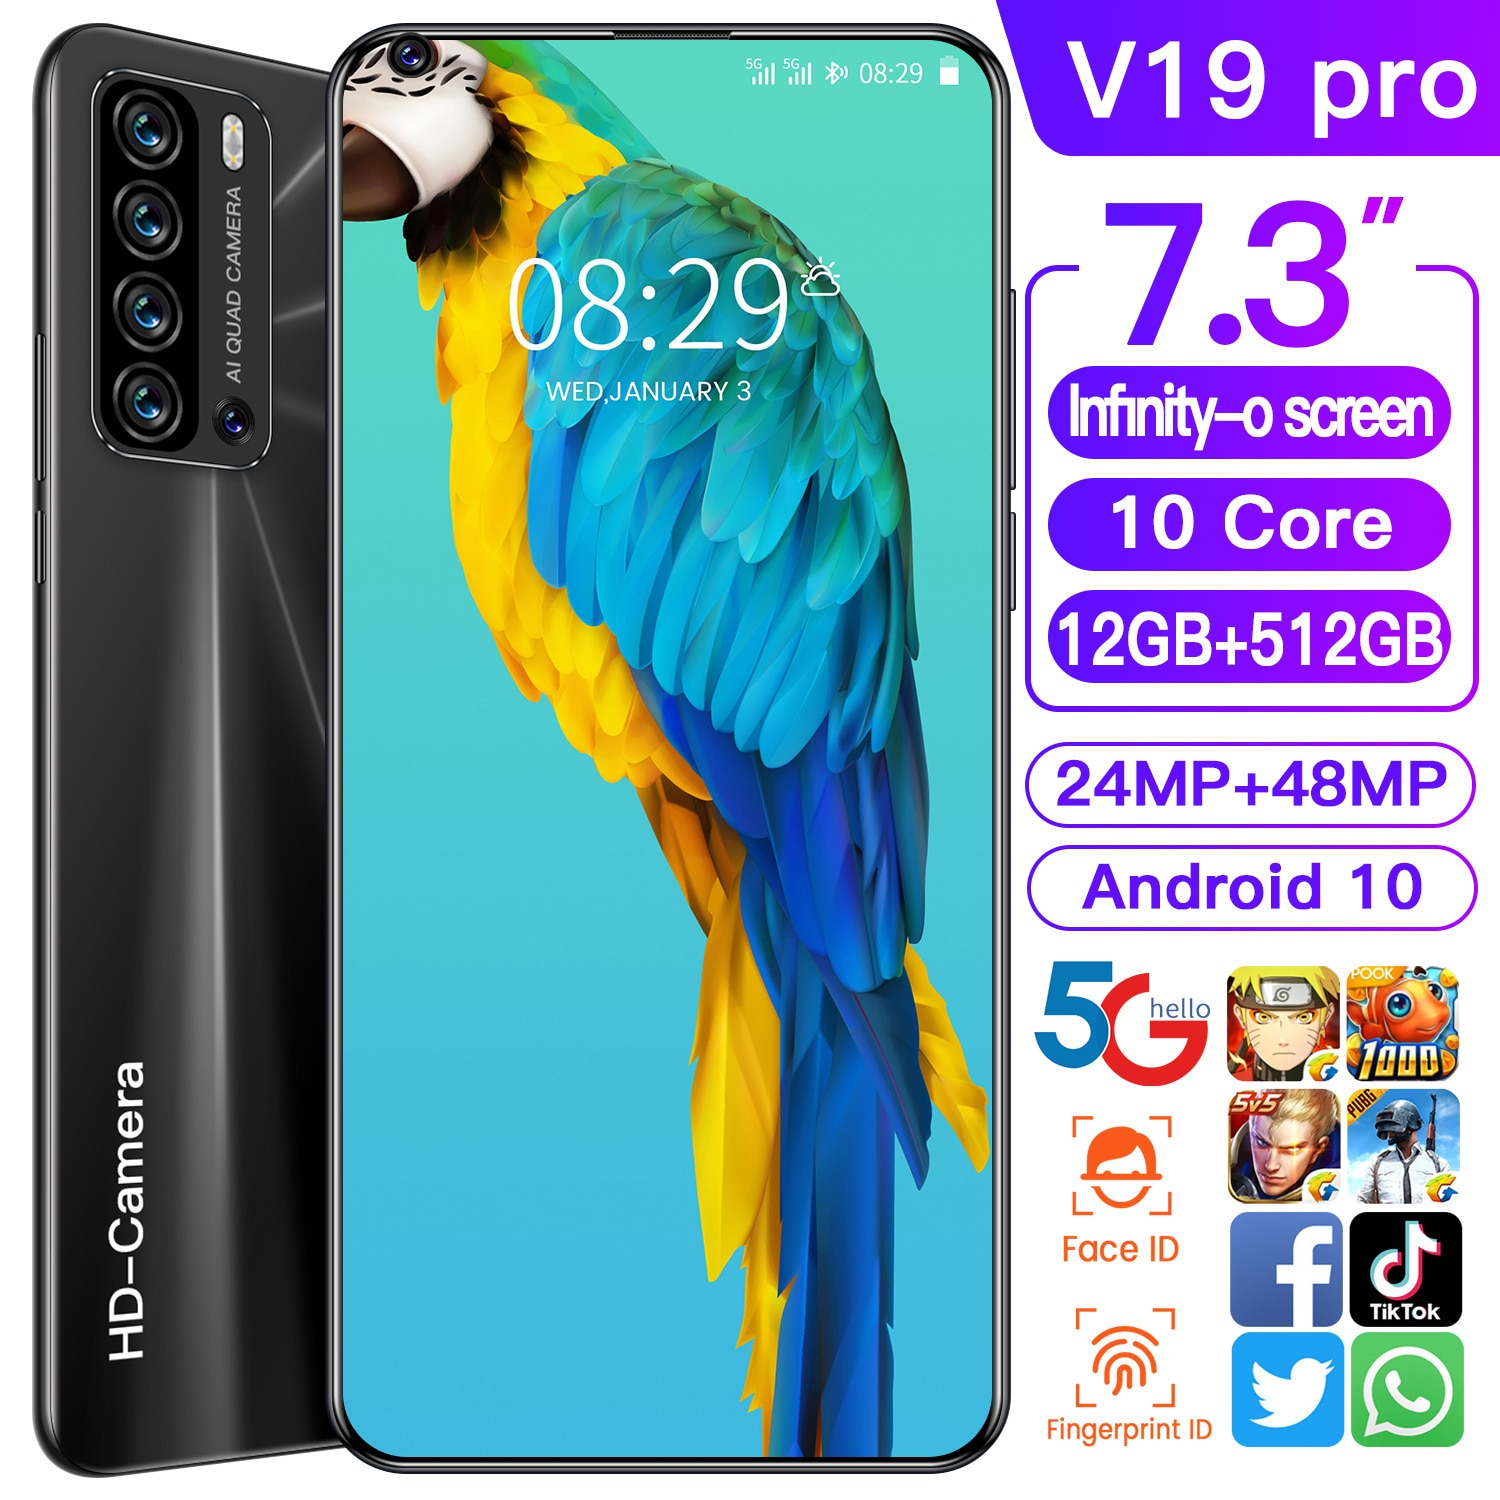 Global Unlocked Smart Phone V19 pro 6.8 Inch Full Screen 4G/5G Smartphone Android 12GB+512GB cell phone Dual Sim Mobile Phone